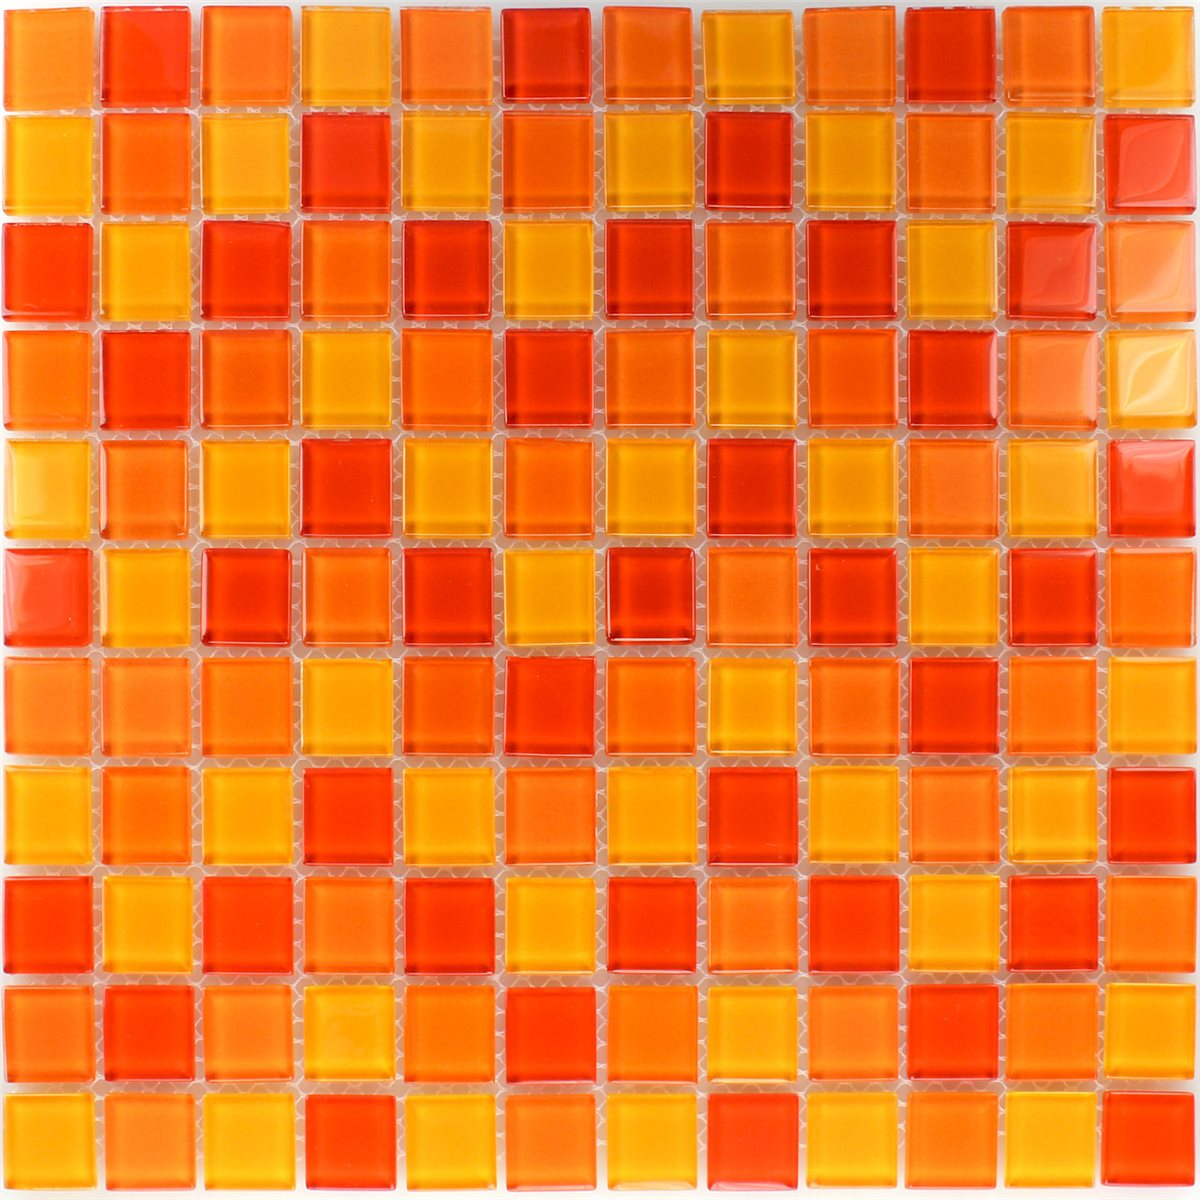 glass mosaic tiles red orange yellow mix. Black Bedroom Furniture Sets. Home Design Ideas